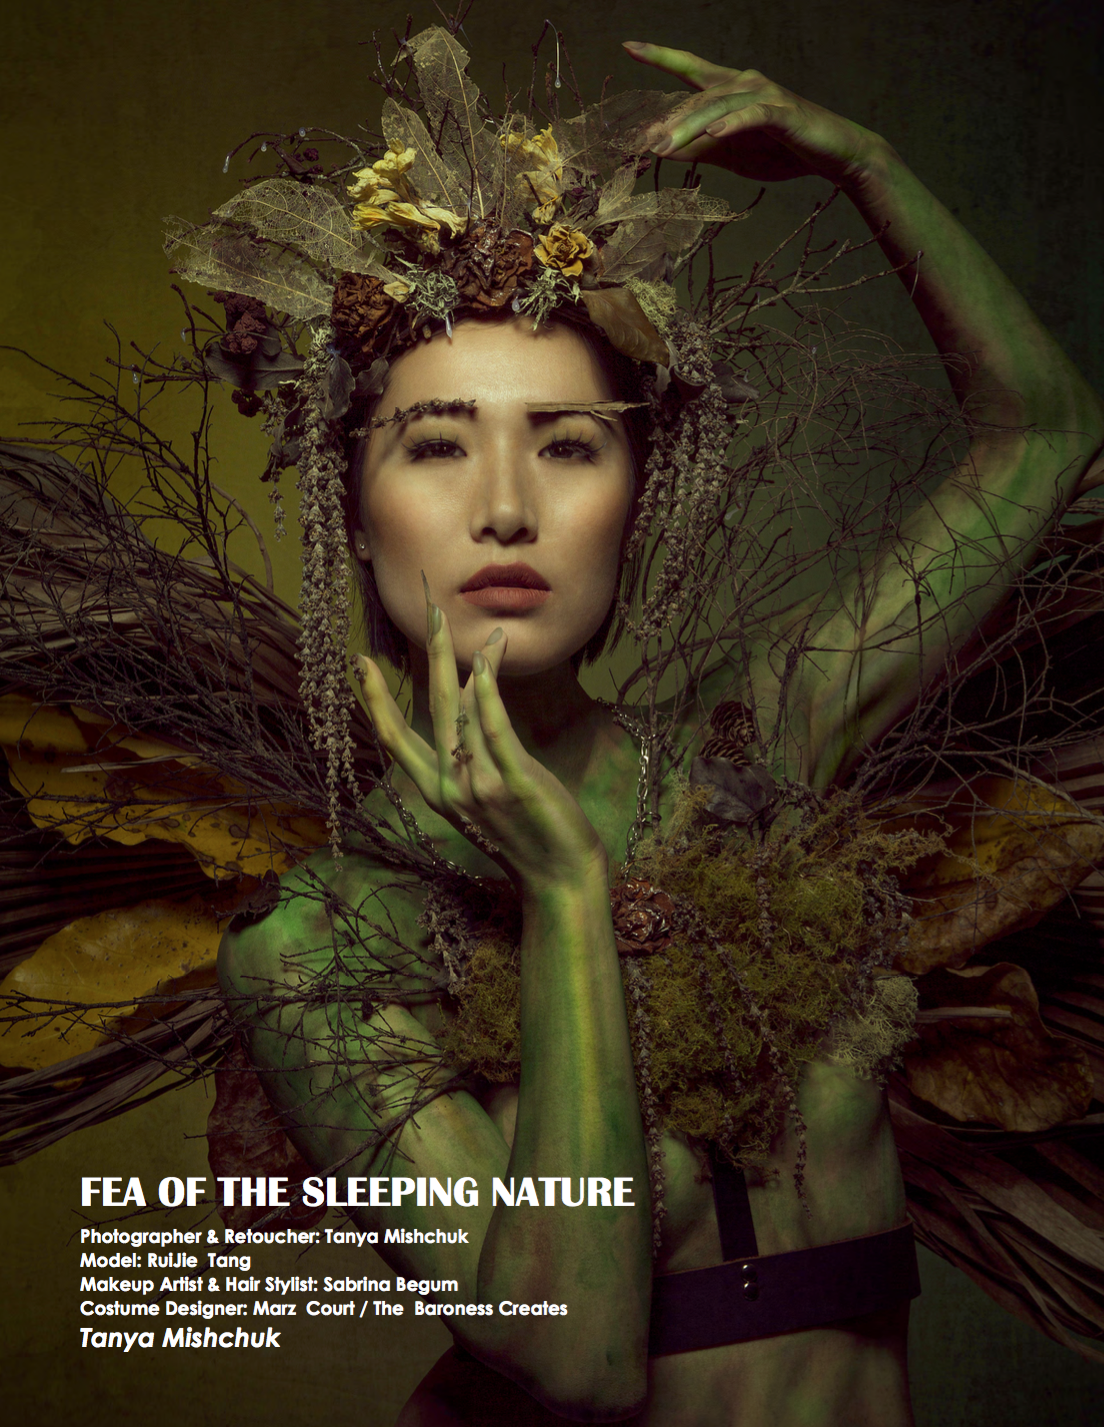 FEA OF THE SLEEPING NATURE